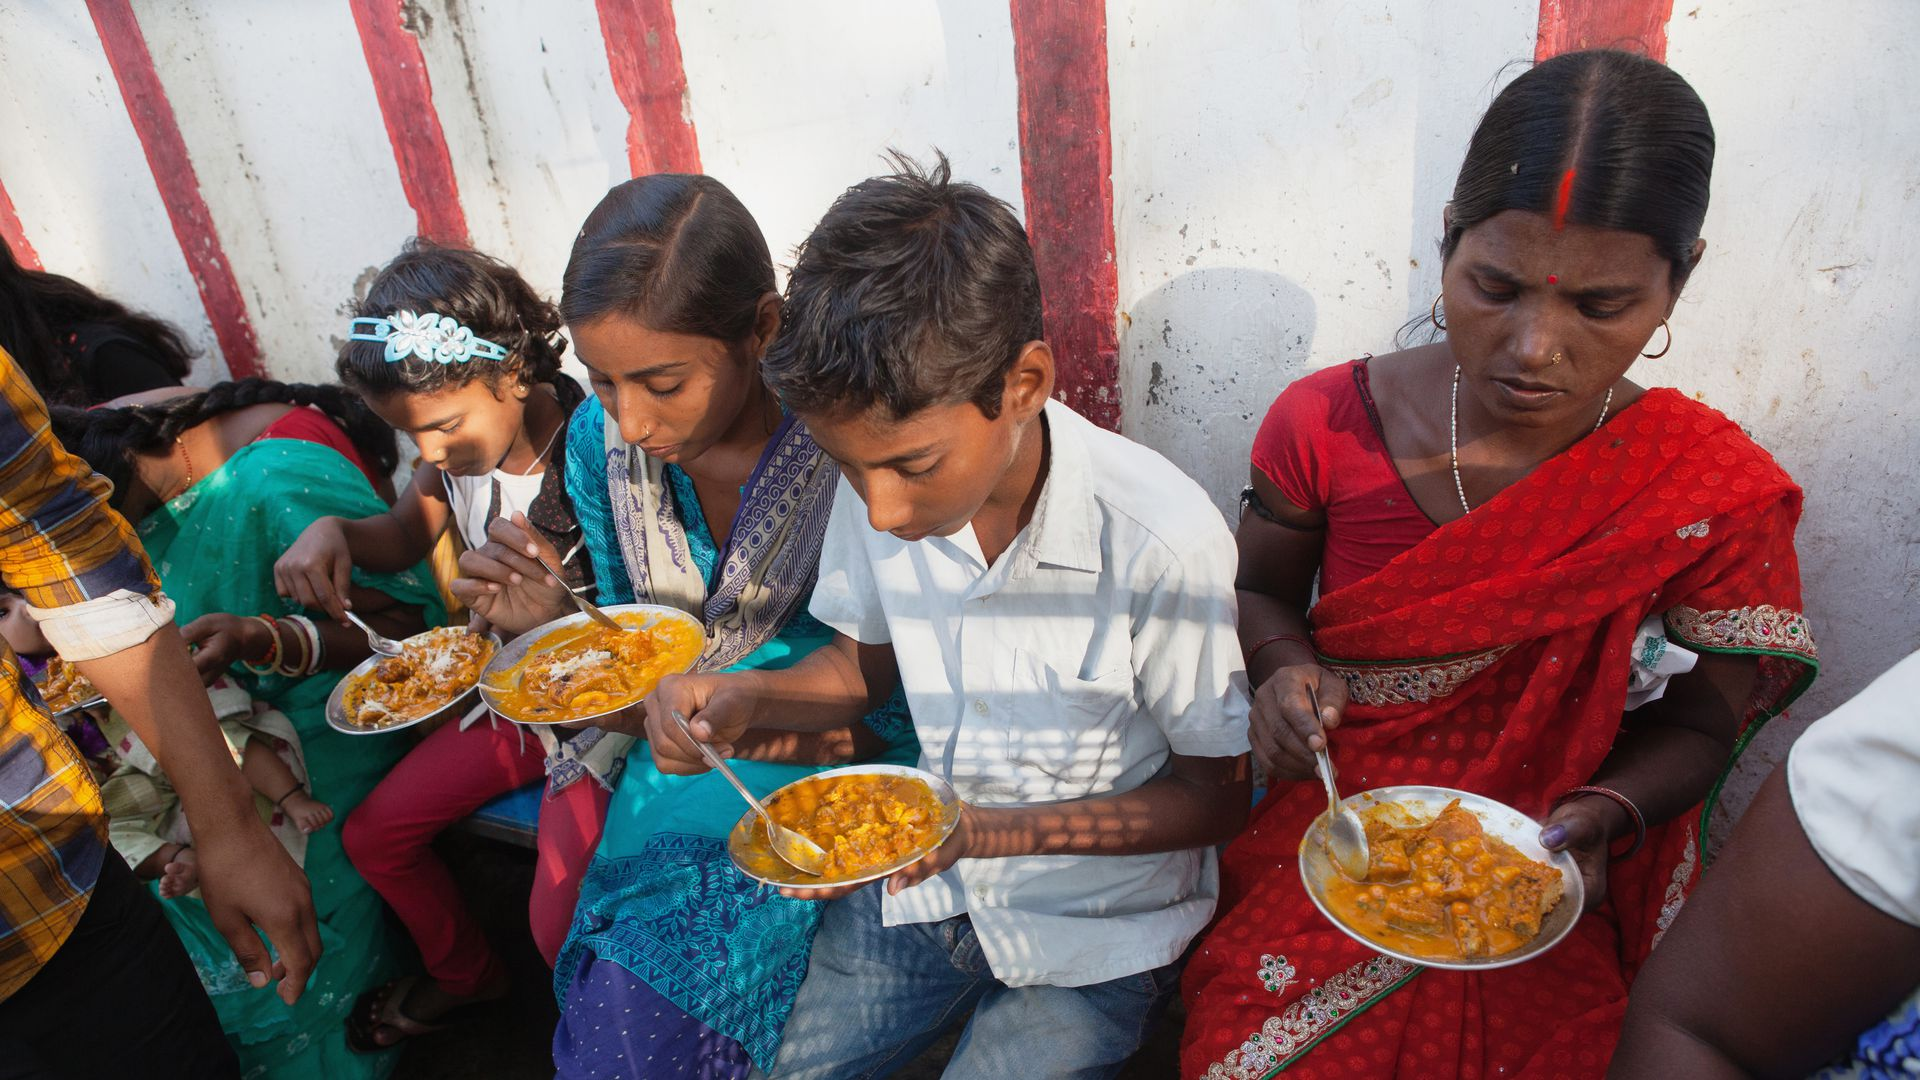 India, Bihar, Bodhgaya, A family eating vegetarian street food in Bodh.